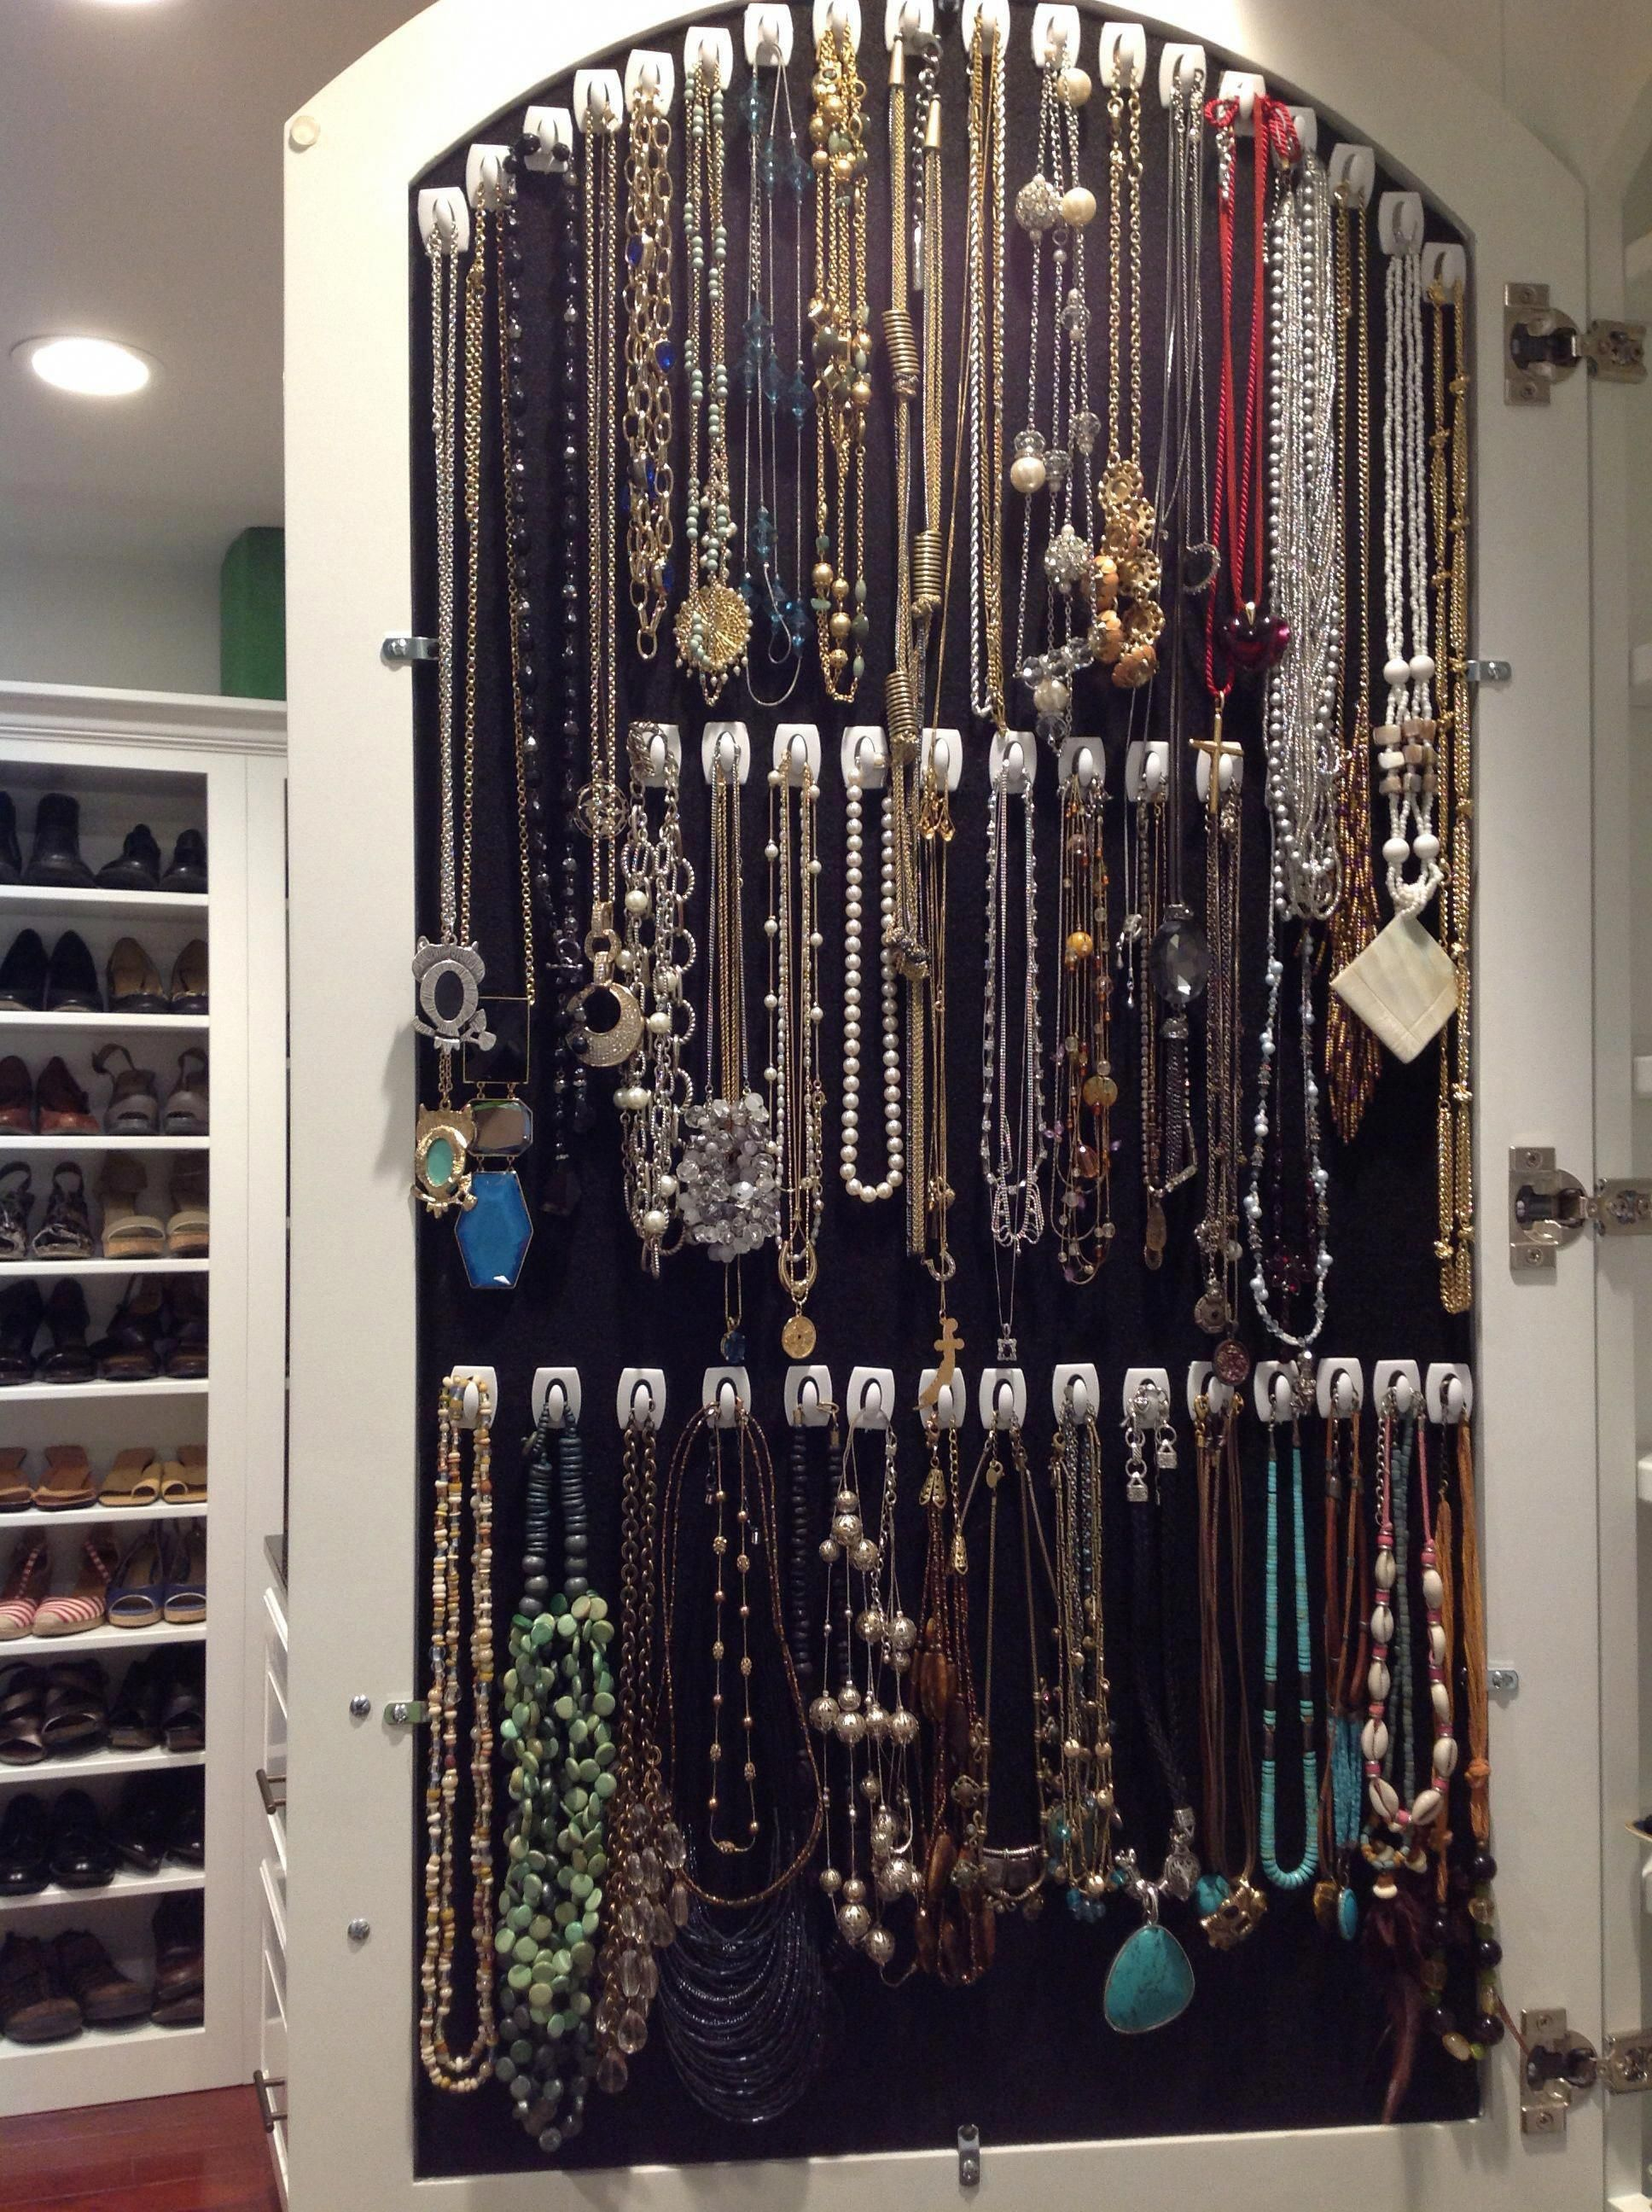 22+ Where to buy jewelry holders viral